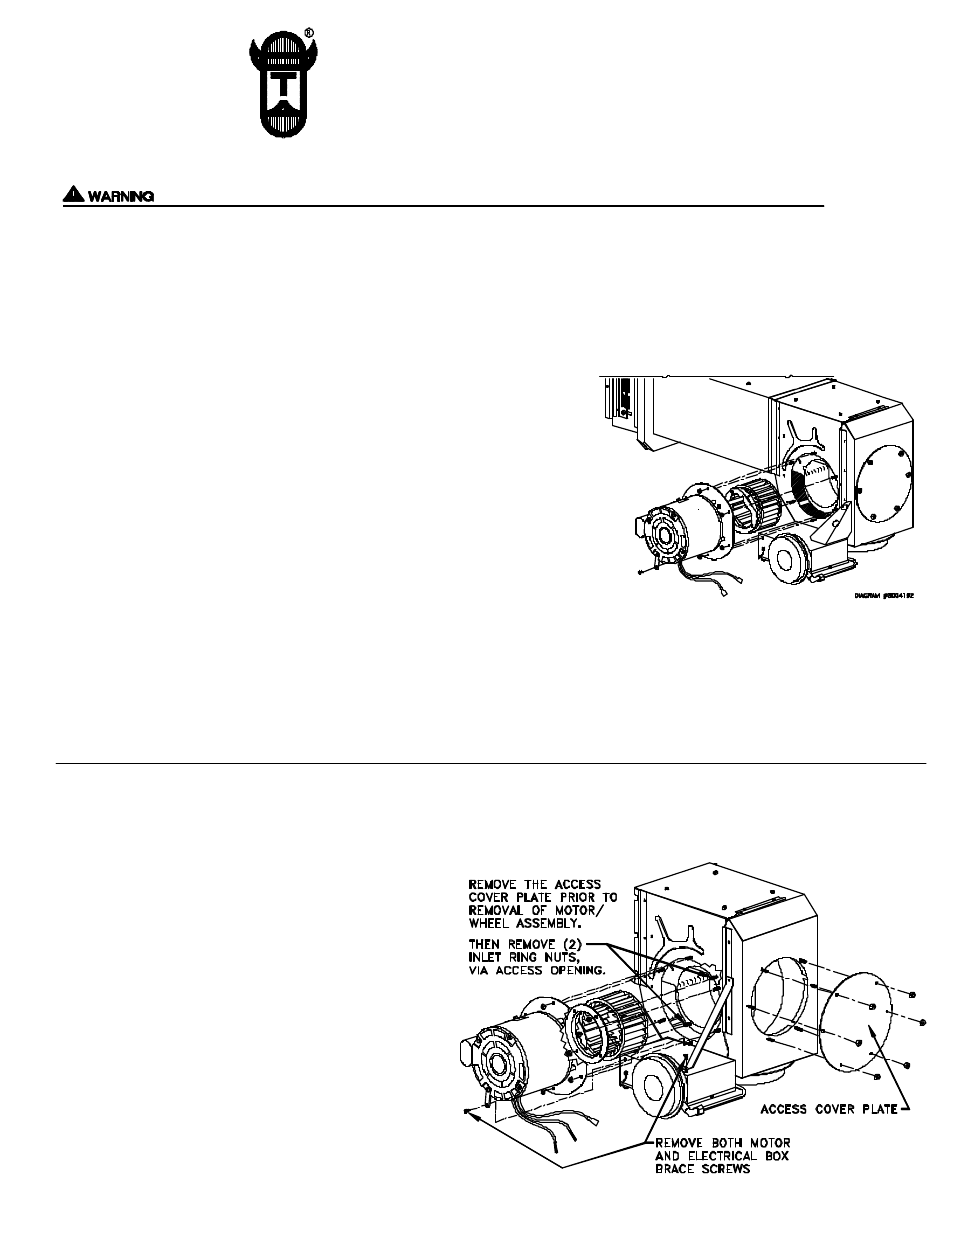 Tjernlund 950 0625 Ss1 Motor Kit 8504016 Rev A 11 99 User Manual Lead Wiring Diagram 2 Pages